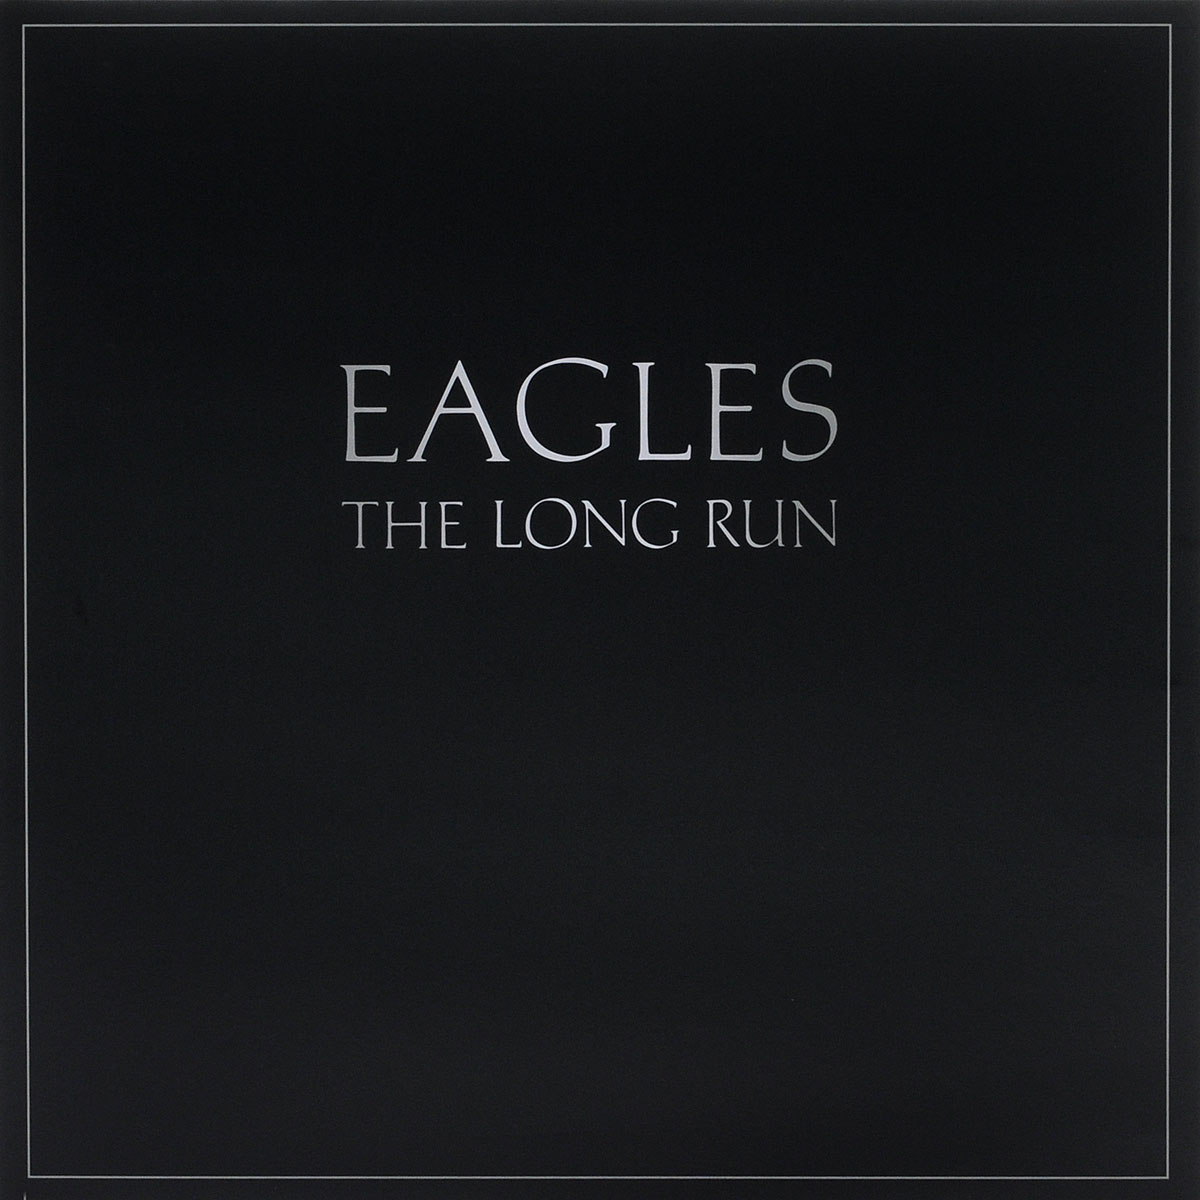 The Eagles Eagles. The Long Run (LP) рюкзаки deuter рюкзак deuter 2016 17 gigant bay dresscode